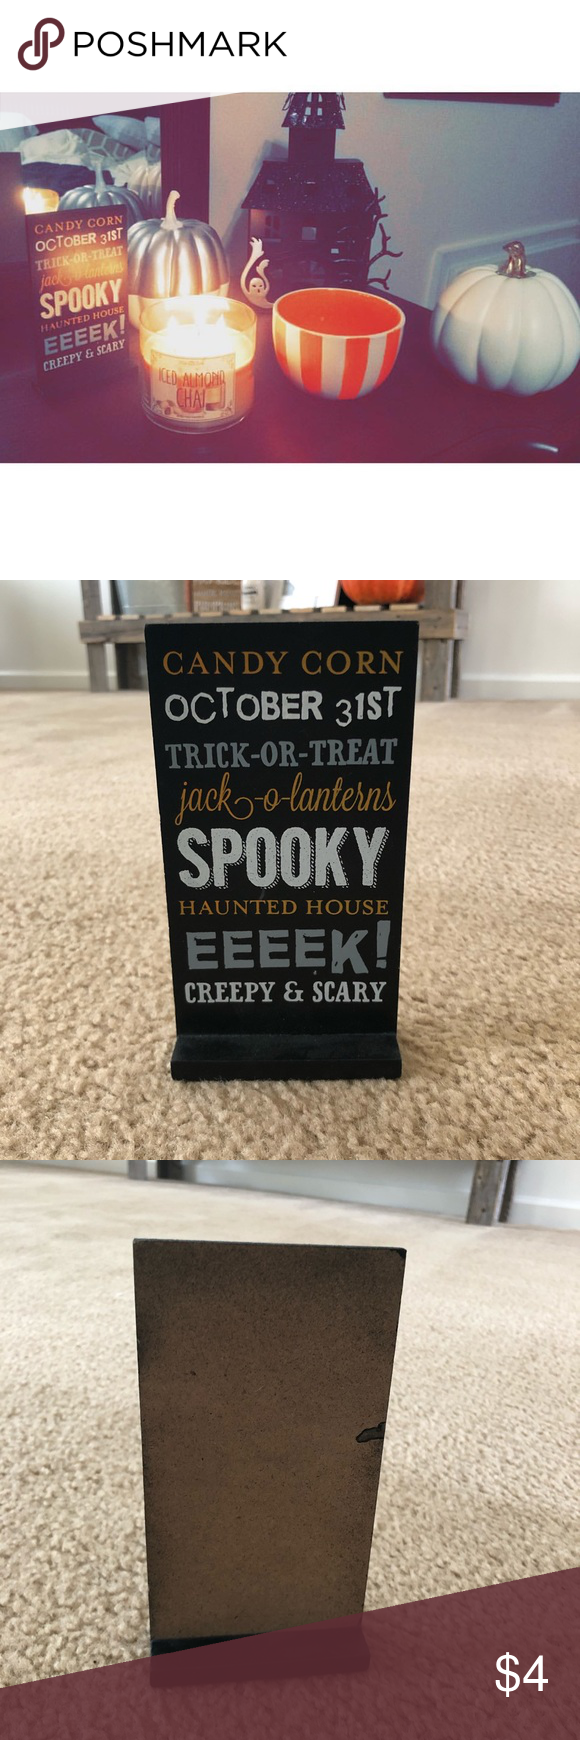 Halloween Decor Sign From Target in 2020 Target